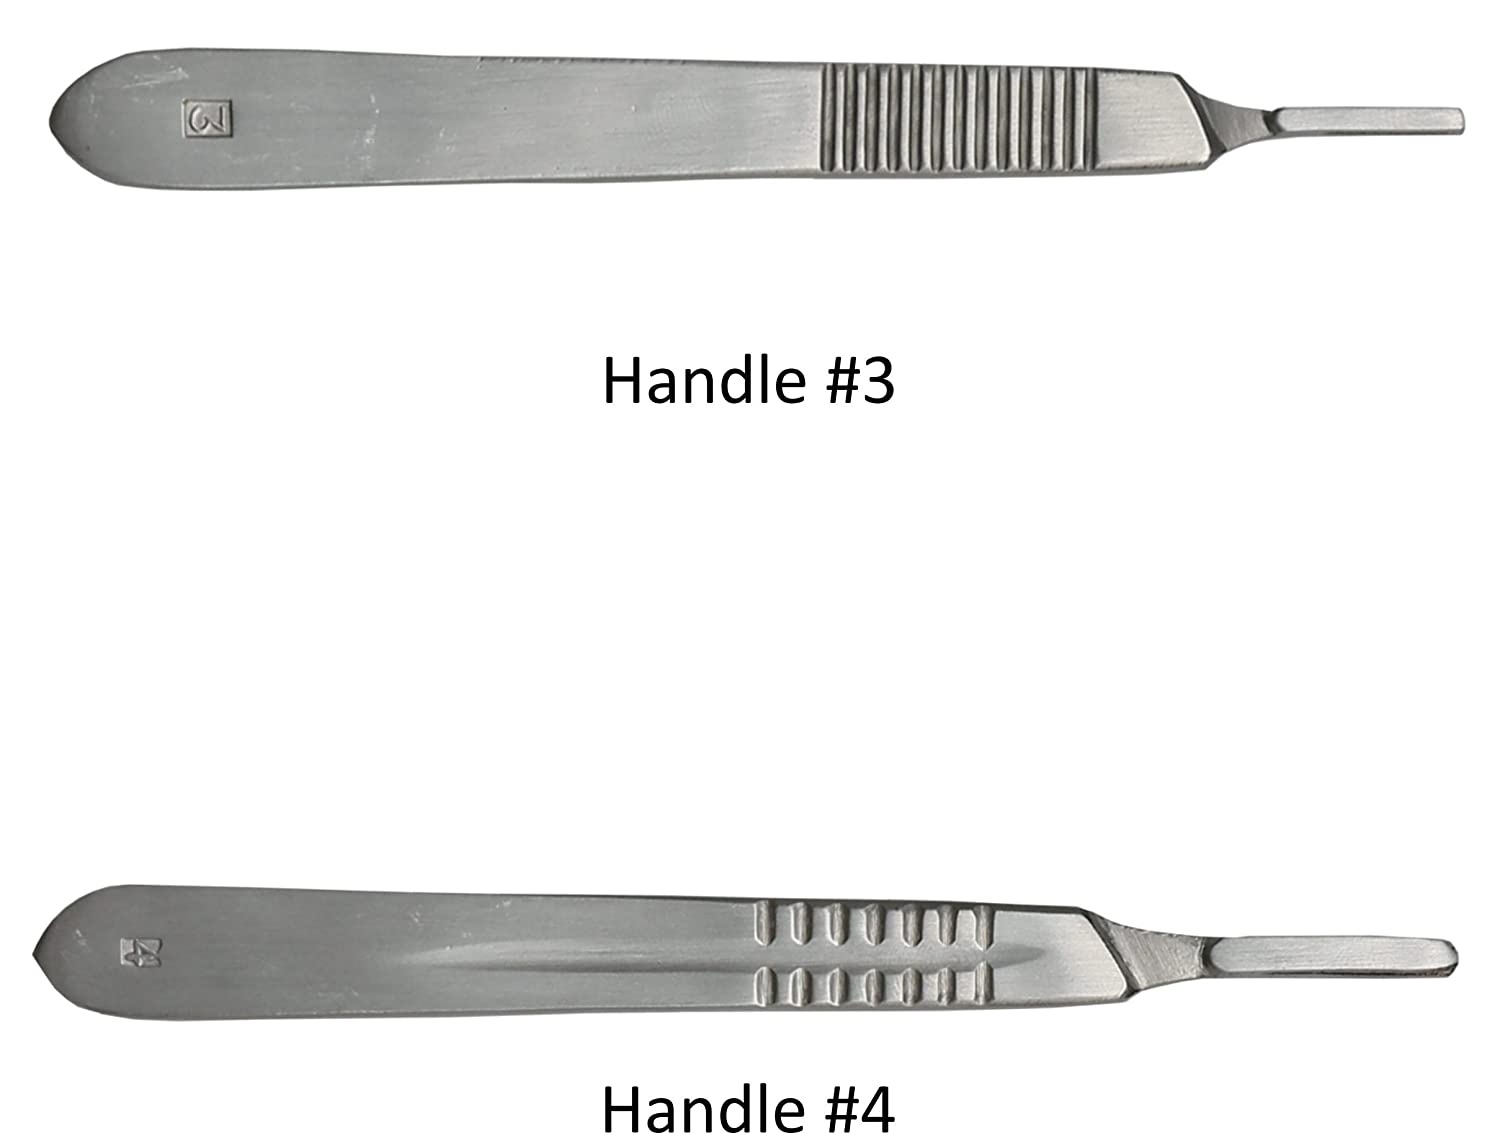 Amazon.com: Dissection Kit - Premium quality Stainless Steel Tools ...